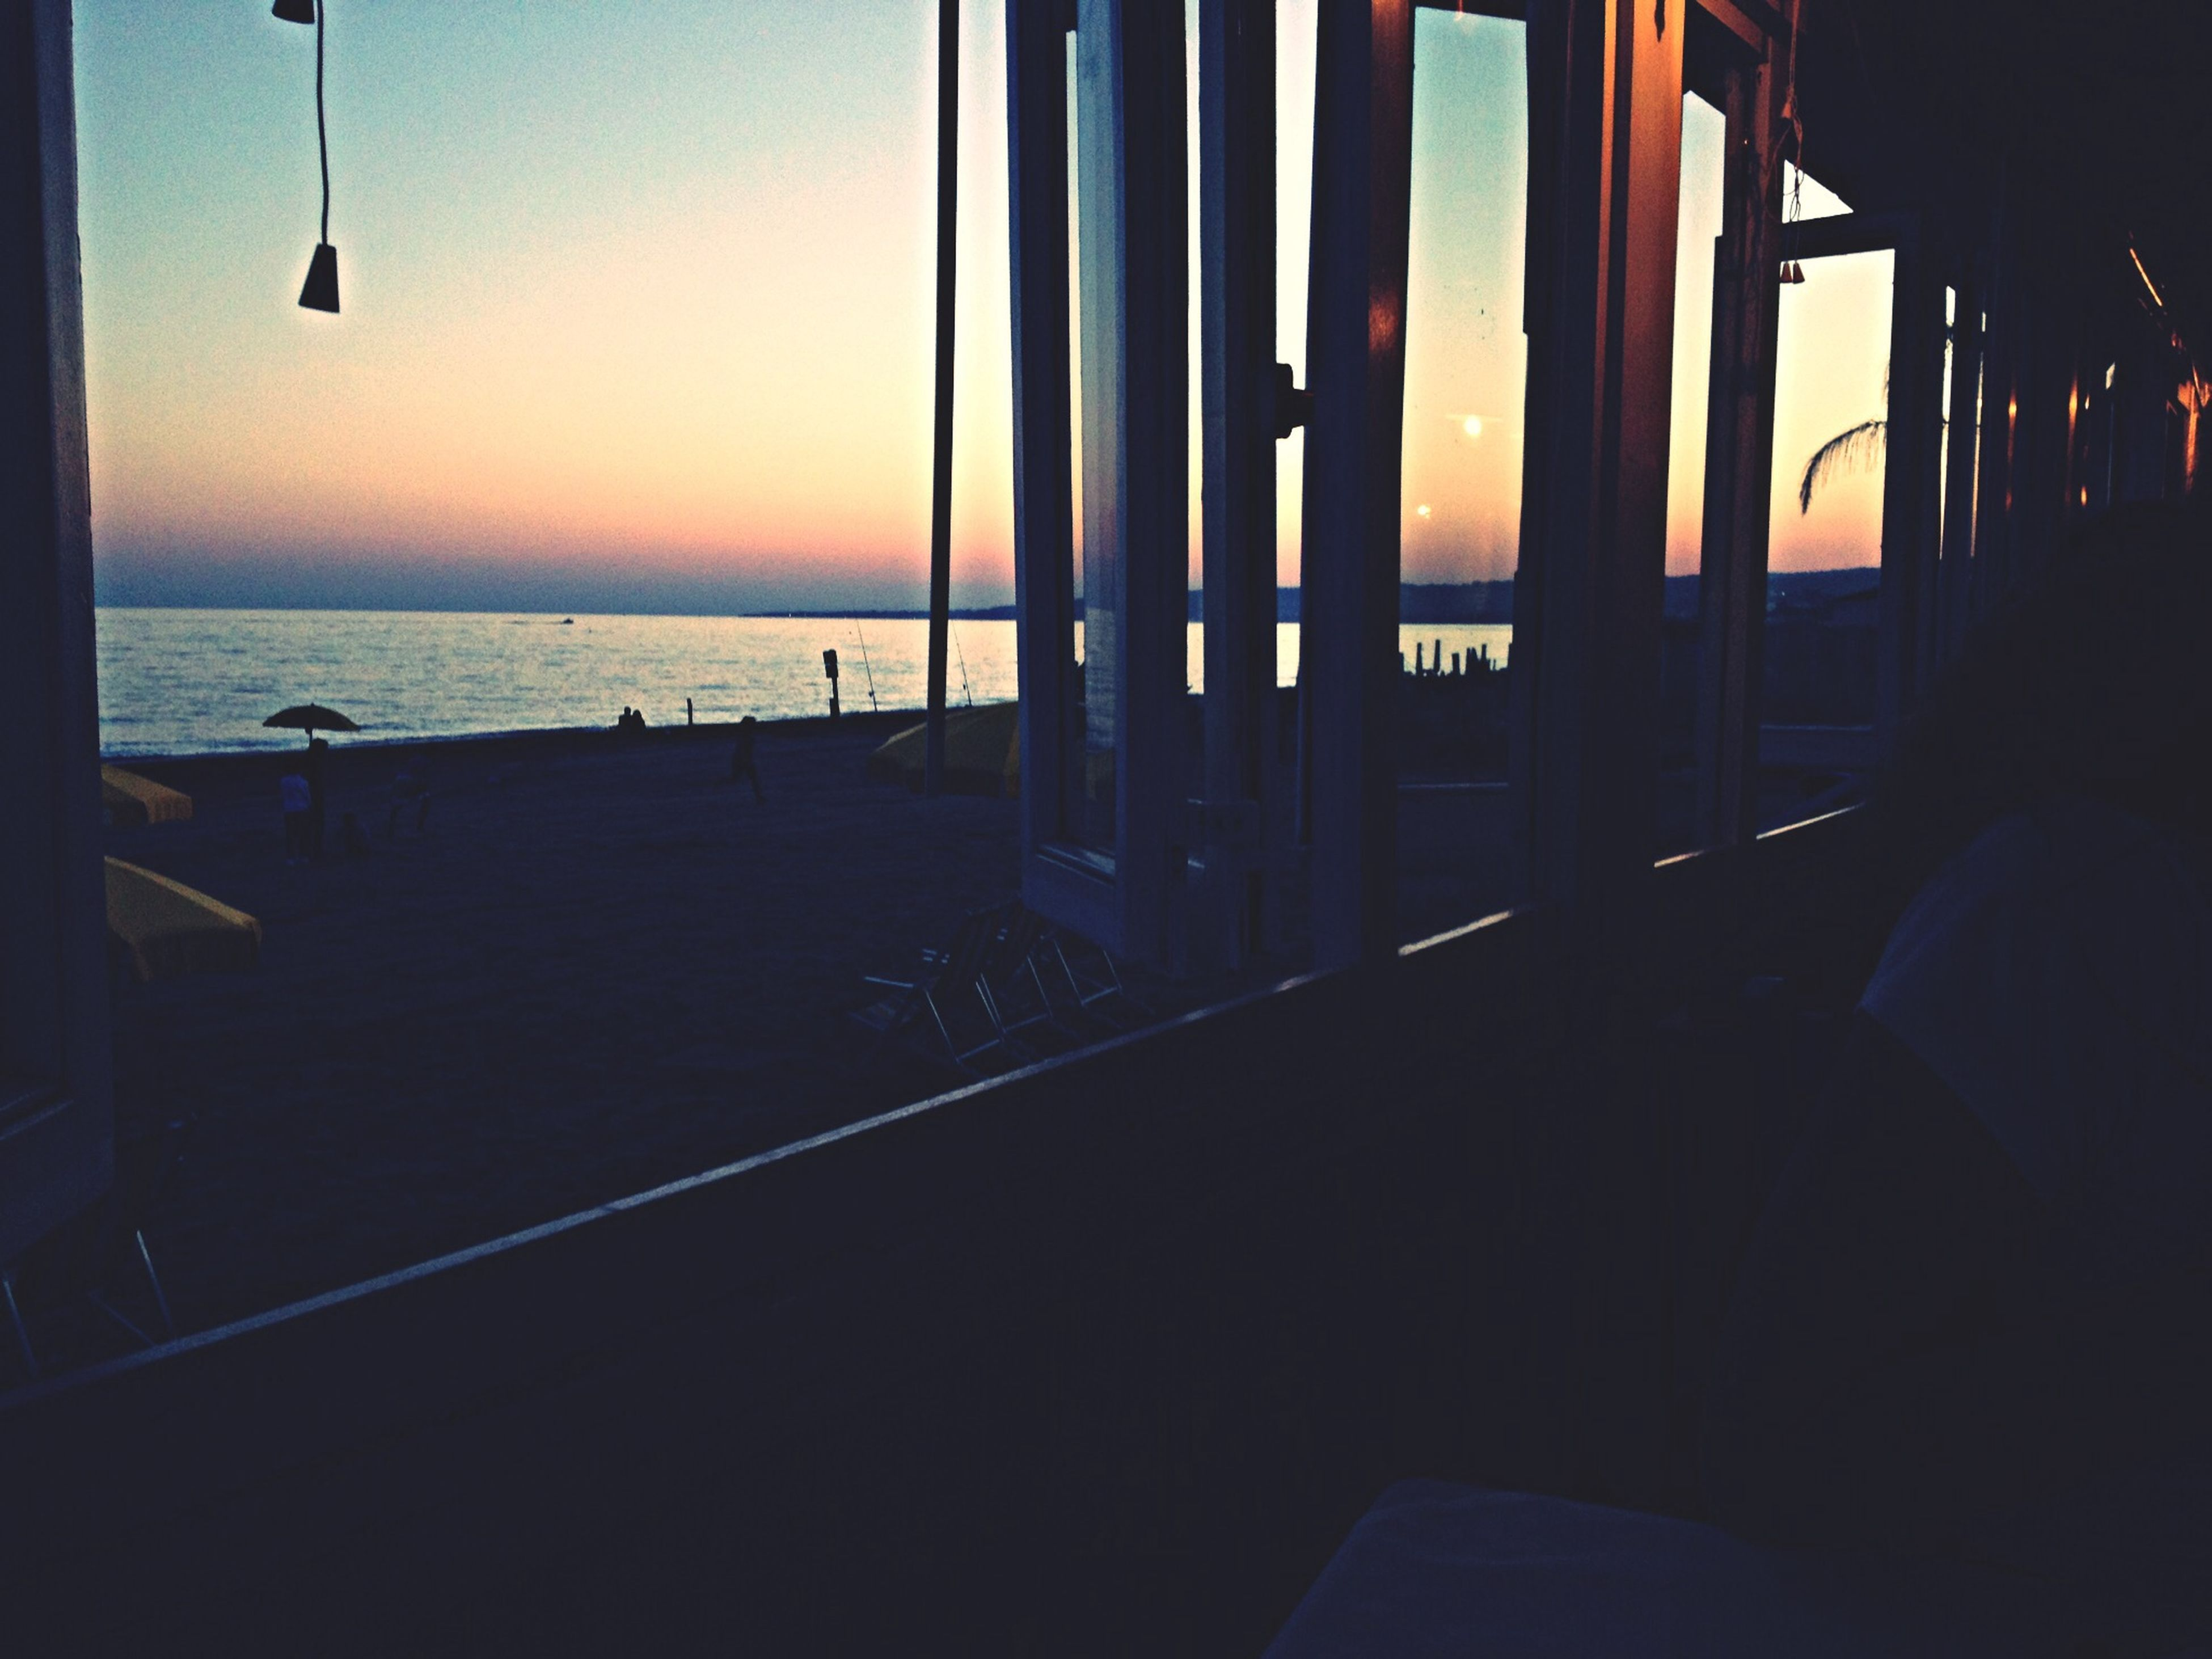 sea, sunset, water, horizon over water, sky, built structure, architecture, silhouette, orange color, beach, indoors, scenics, tranquility, dusk, beauty in nature, tranquil scene, nature, window, reflection, idyllic